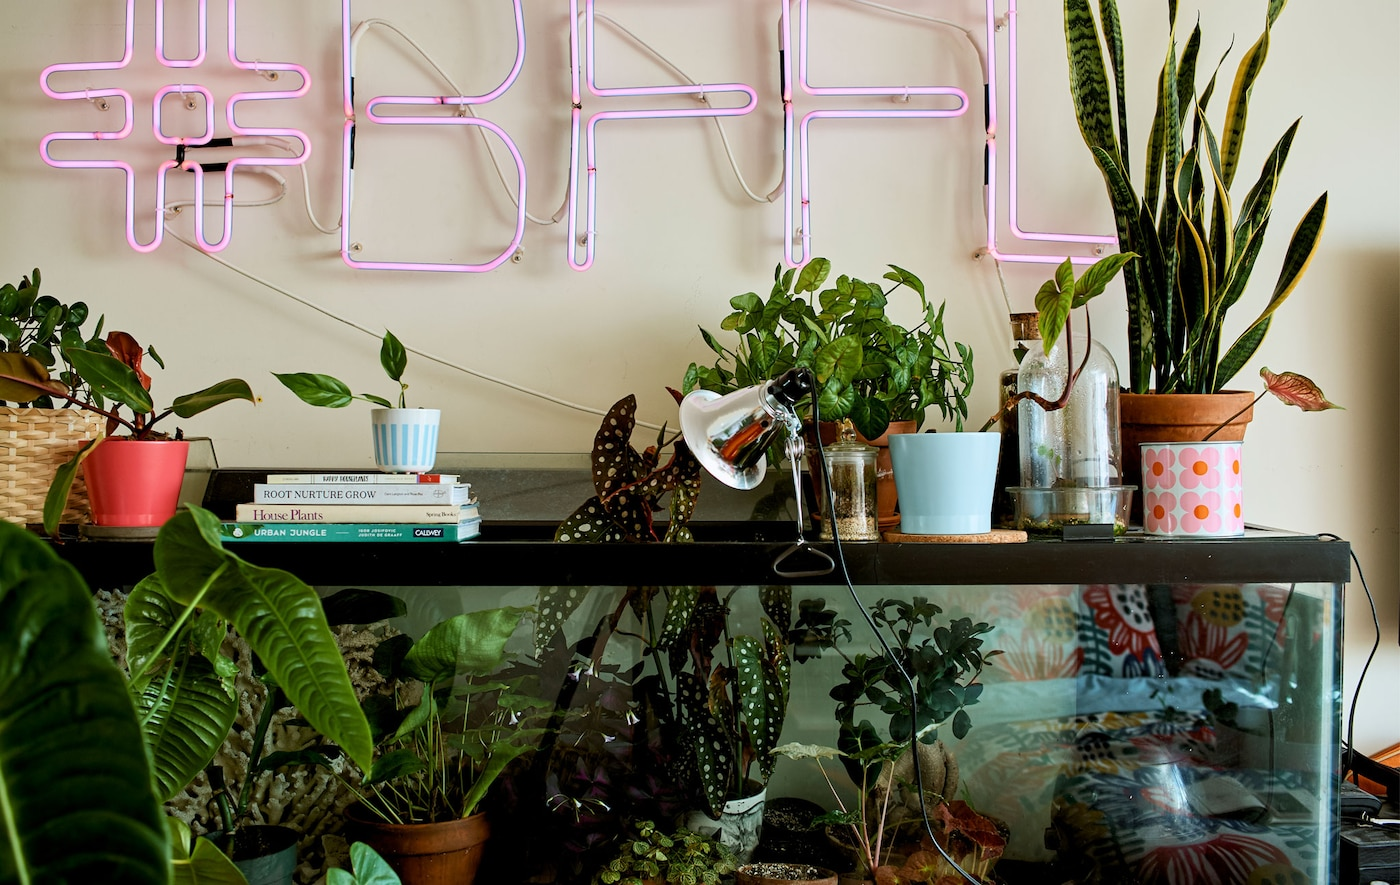 A bedroom with a plant display in a fish tank and pink neon sign on the wall above.